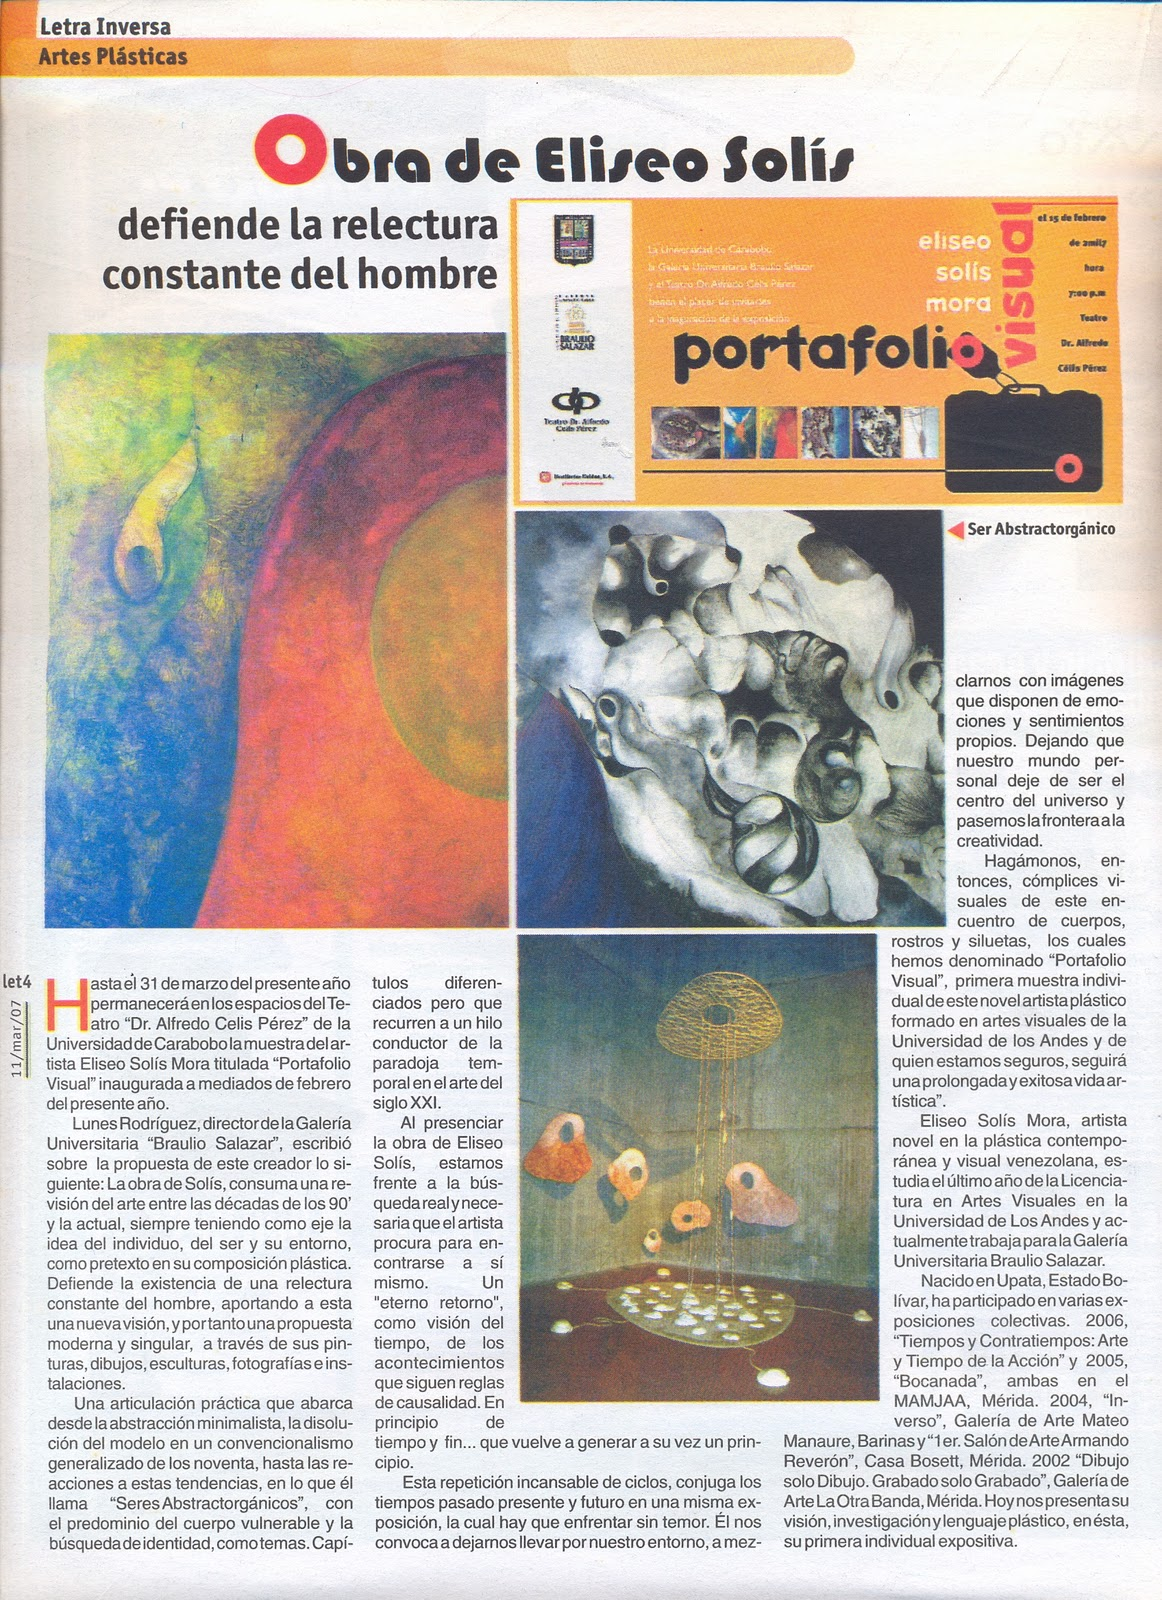 cartilla as domingo 11 marzo 2007: